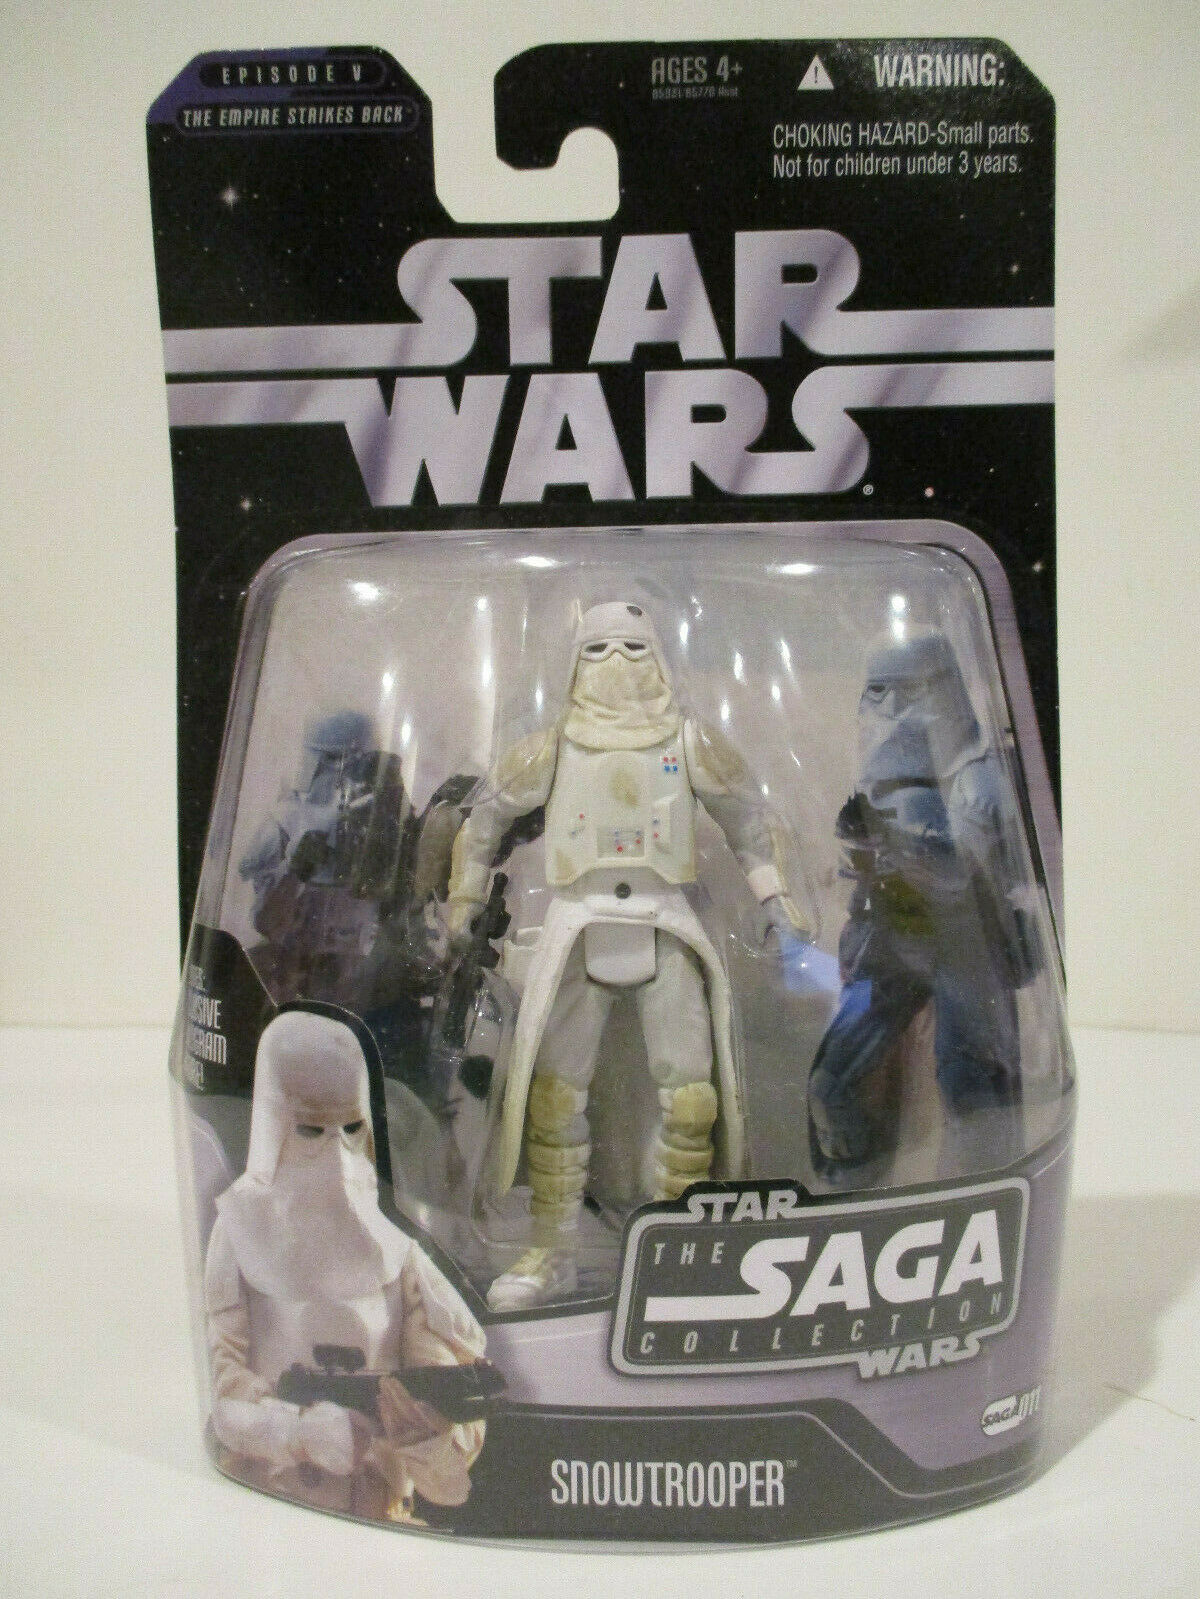 STAR WARS THE SAGA COLLECTION GALACTIC HUNT SNOWTROOPER #11